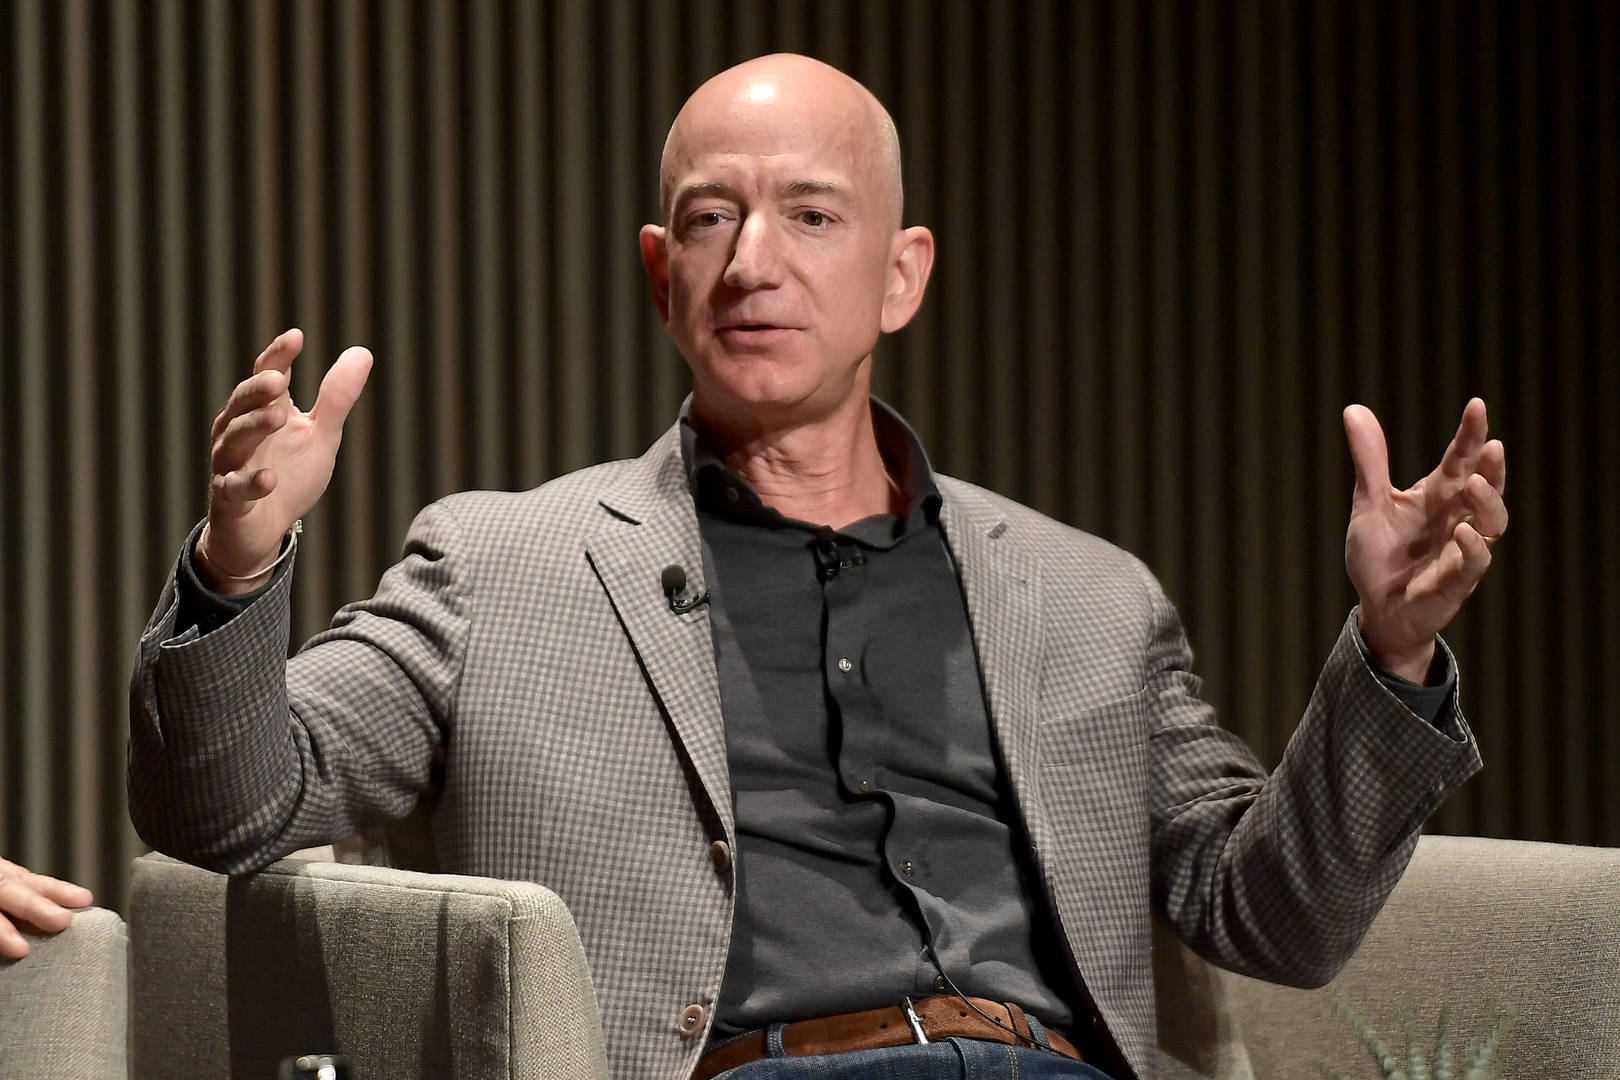 Jeff Bezos Responds To Amazon Customer's Complaint About Black Lives Matter